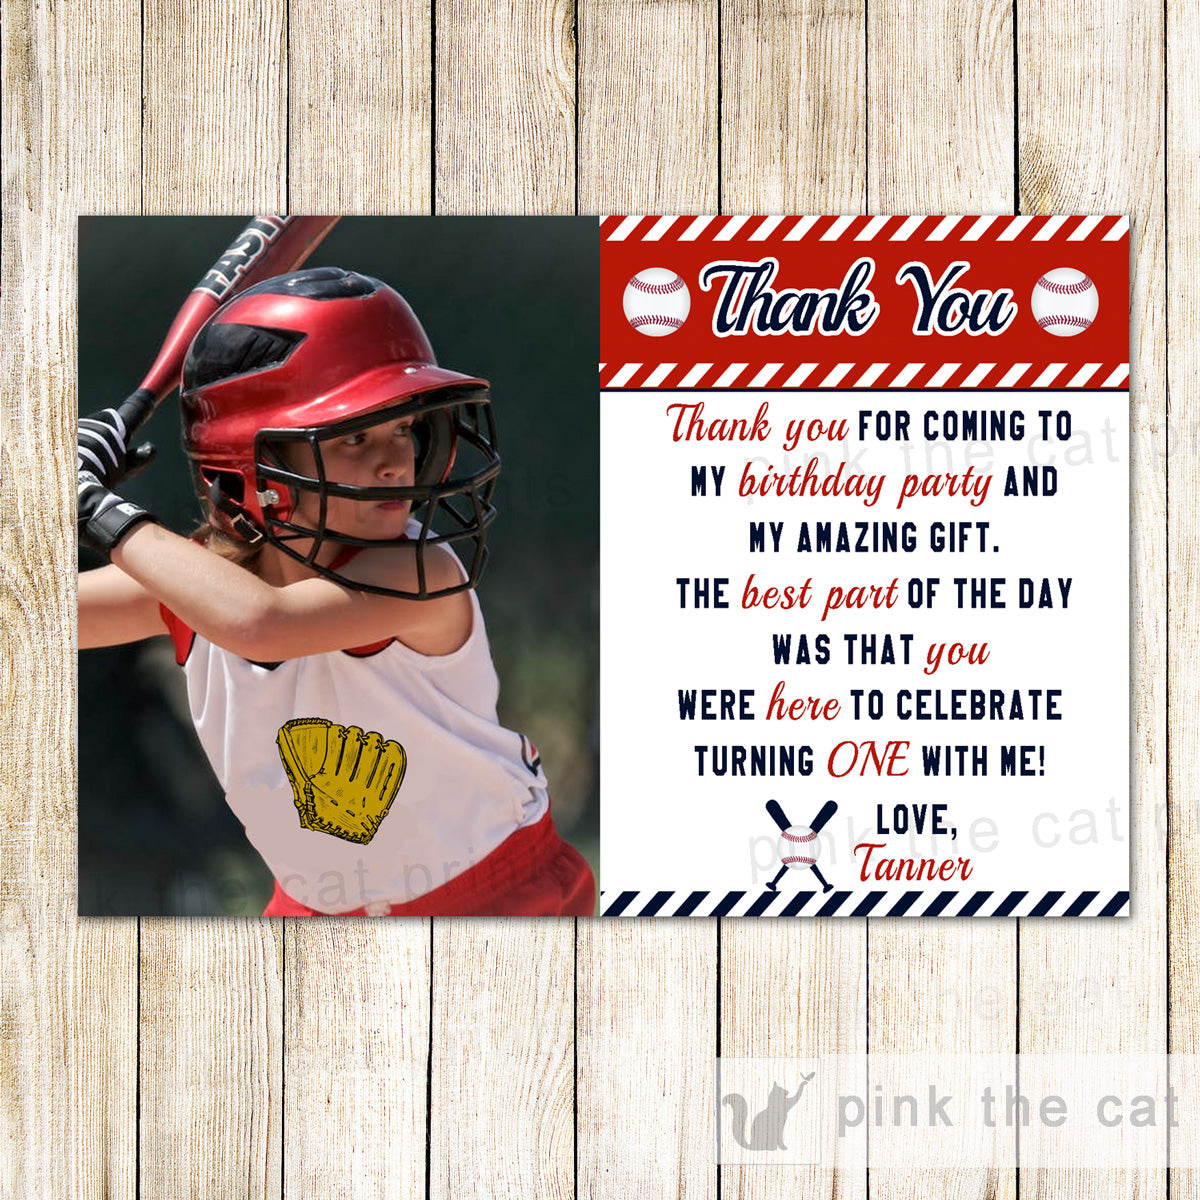 30 Thank You Cards Baseball Kids Birthday Photo Printable Pink The Cat